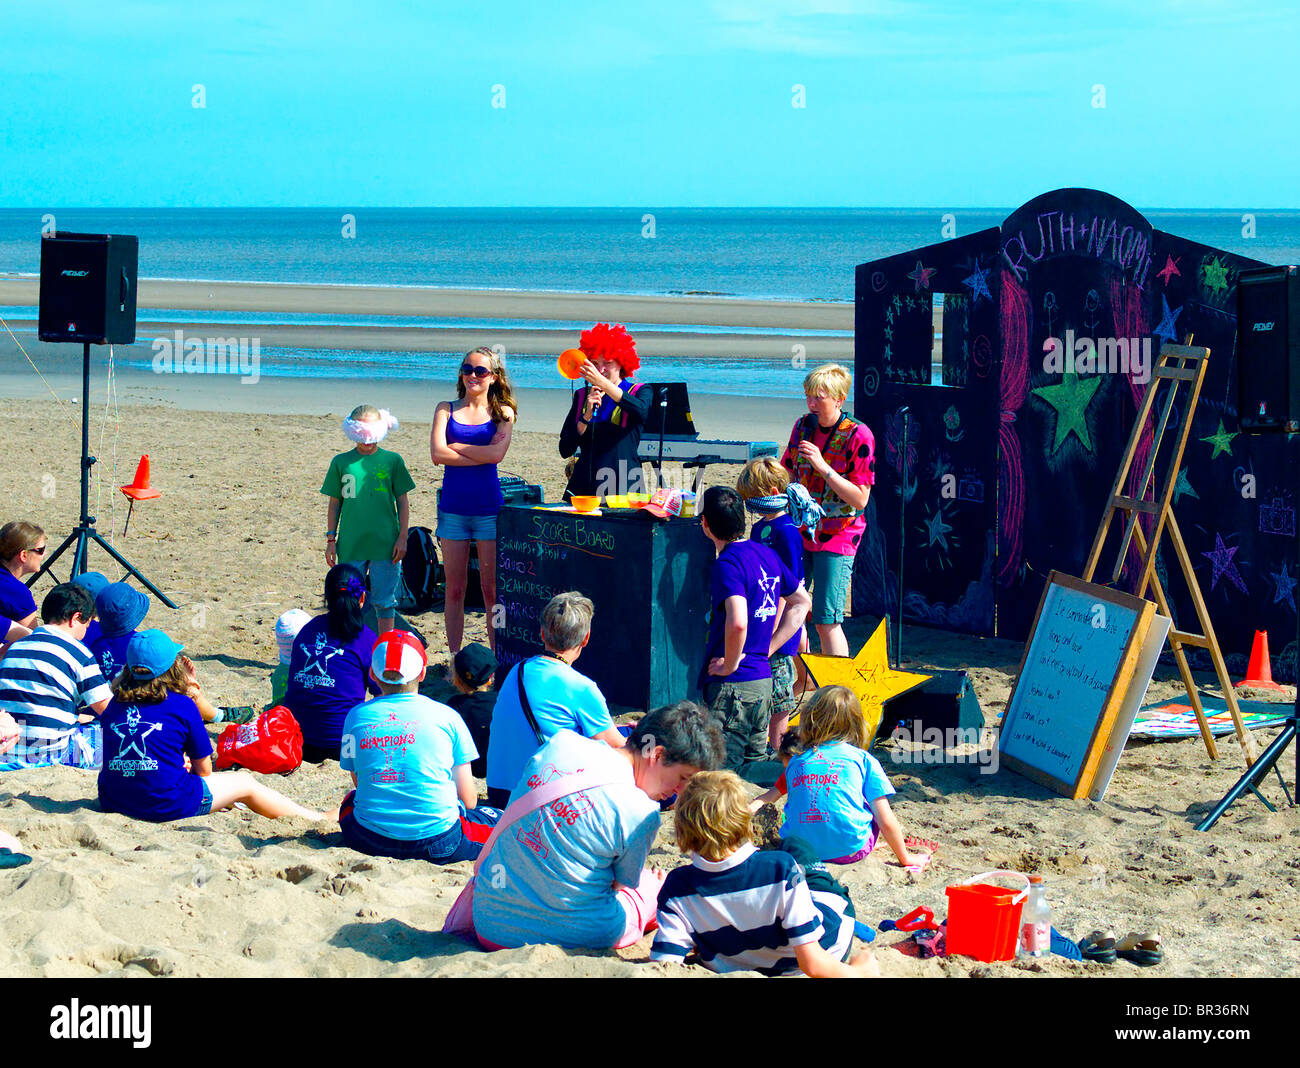 Beach entertainers,entertaining fanilies on the beach at Sutton-on-sea,Lincolnshire,UK. - Stock Image